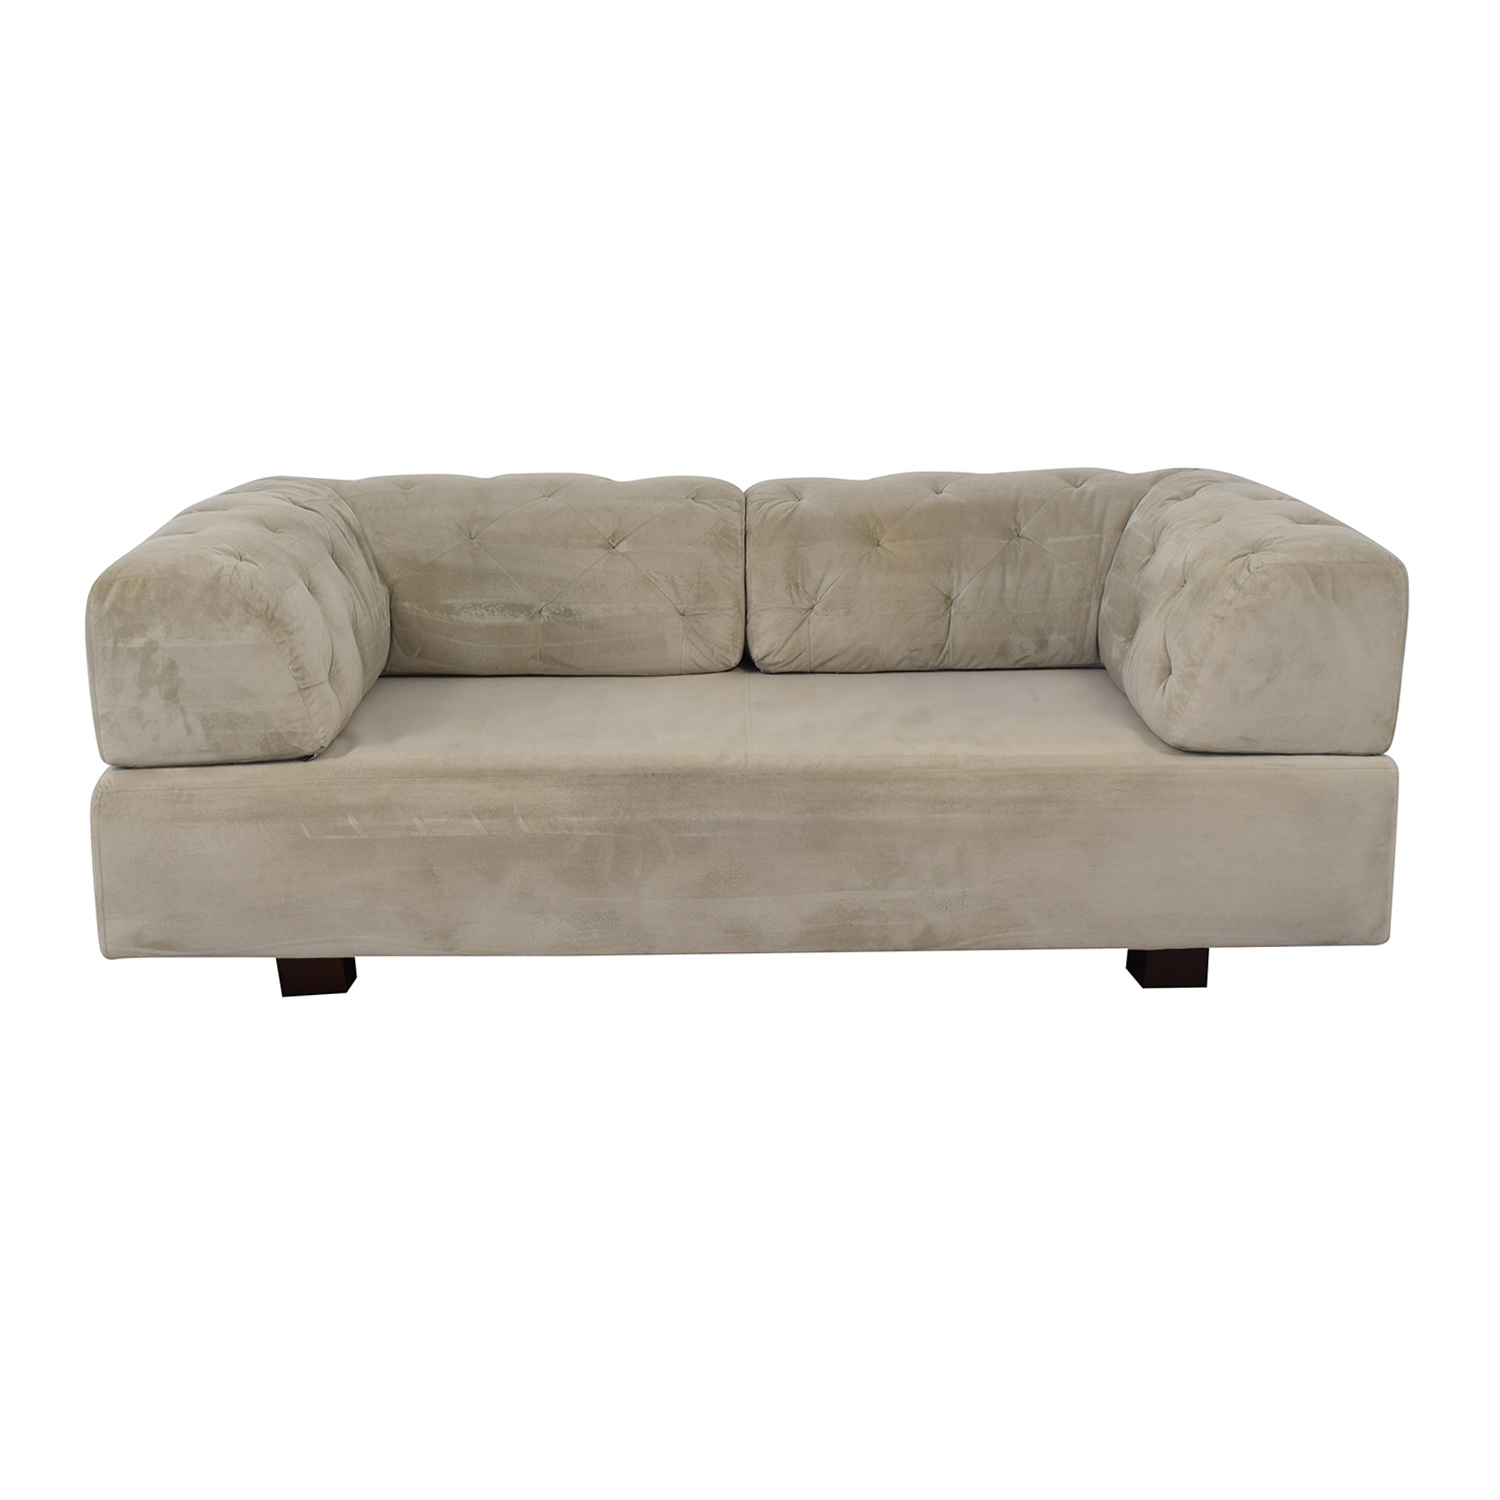 West Elm West Elm Tillary Tufted Sofa with Two Corner Cushions nyc